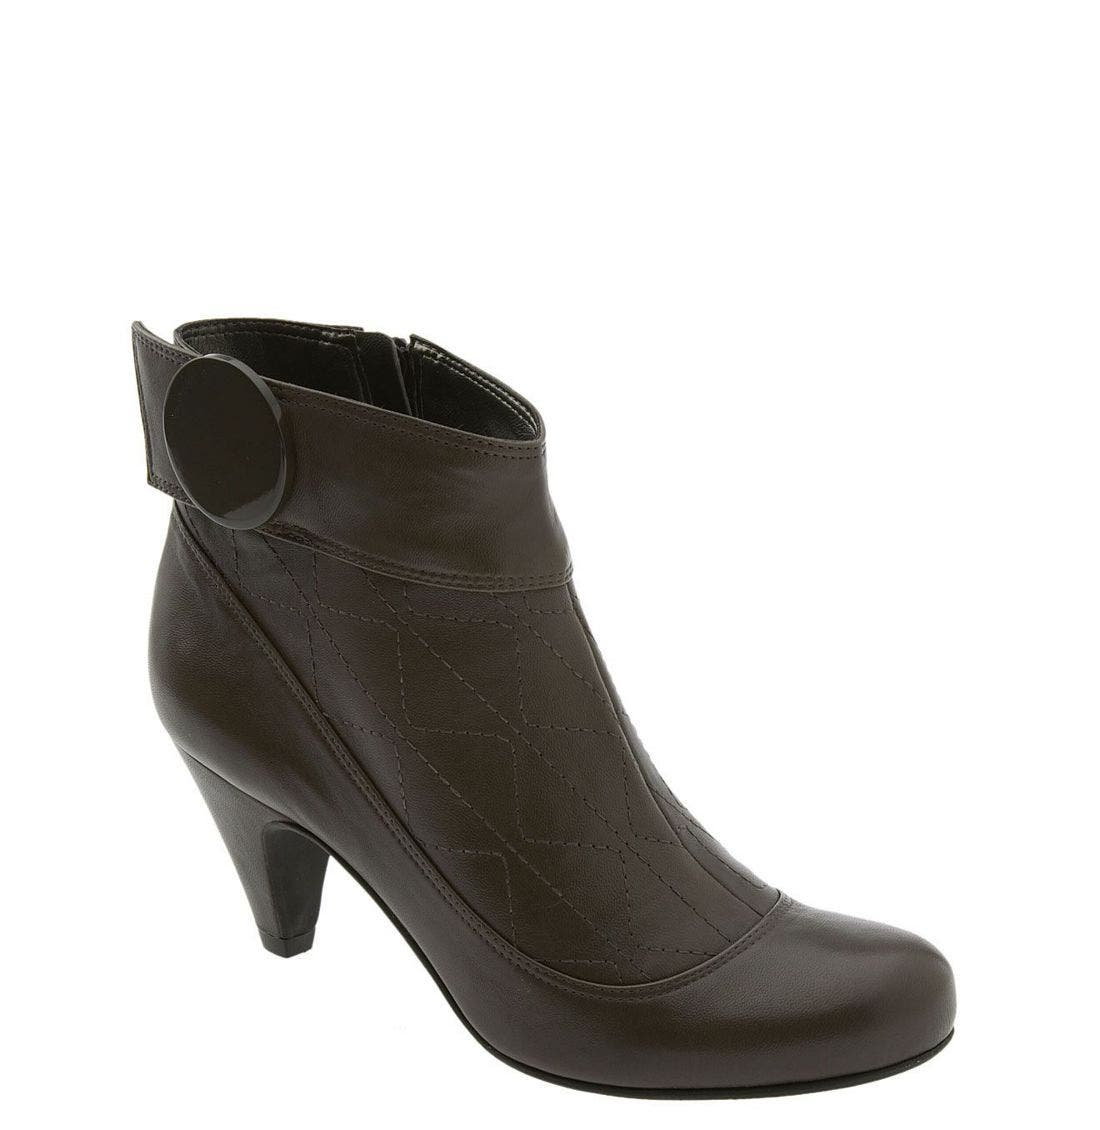 Alternate Image 1 Selected - Vince Camuto 'Cherie' Quilted Ankle Boot